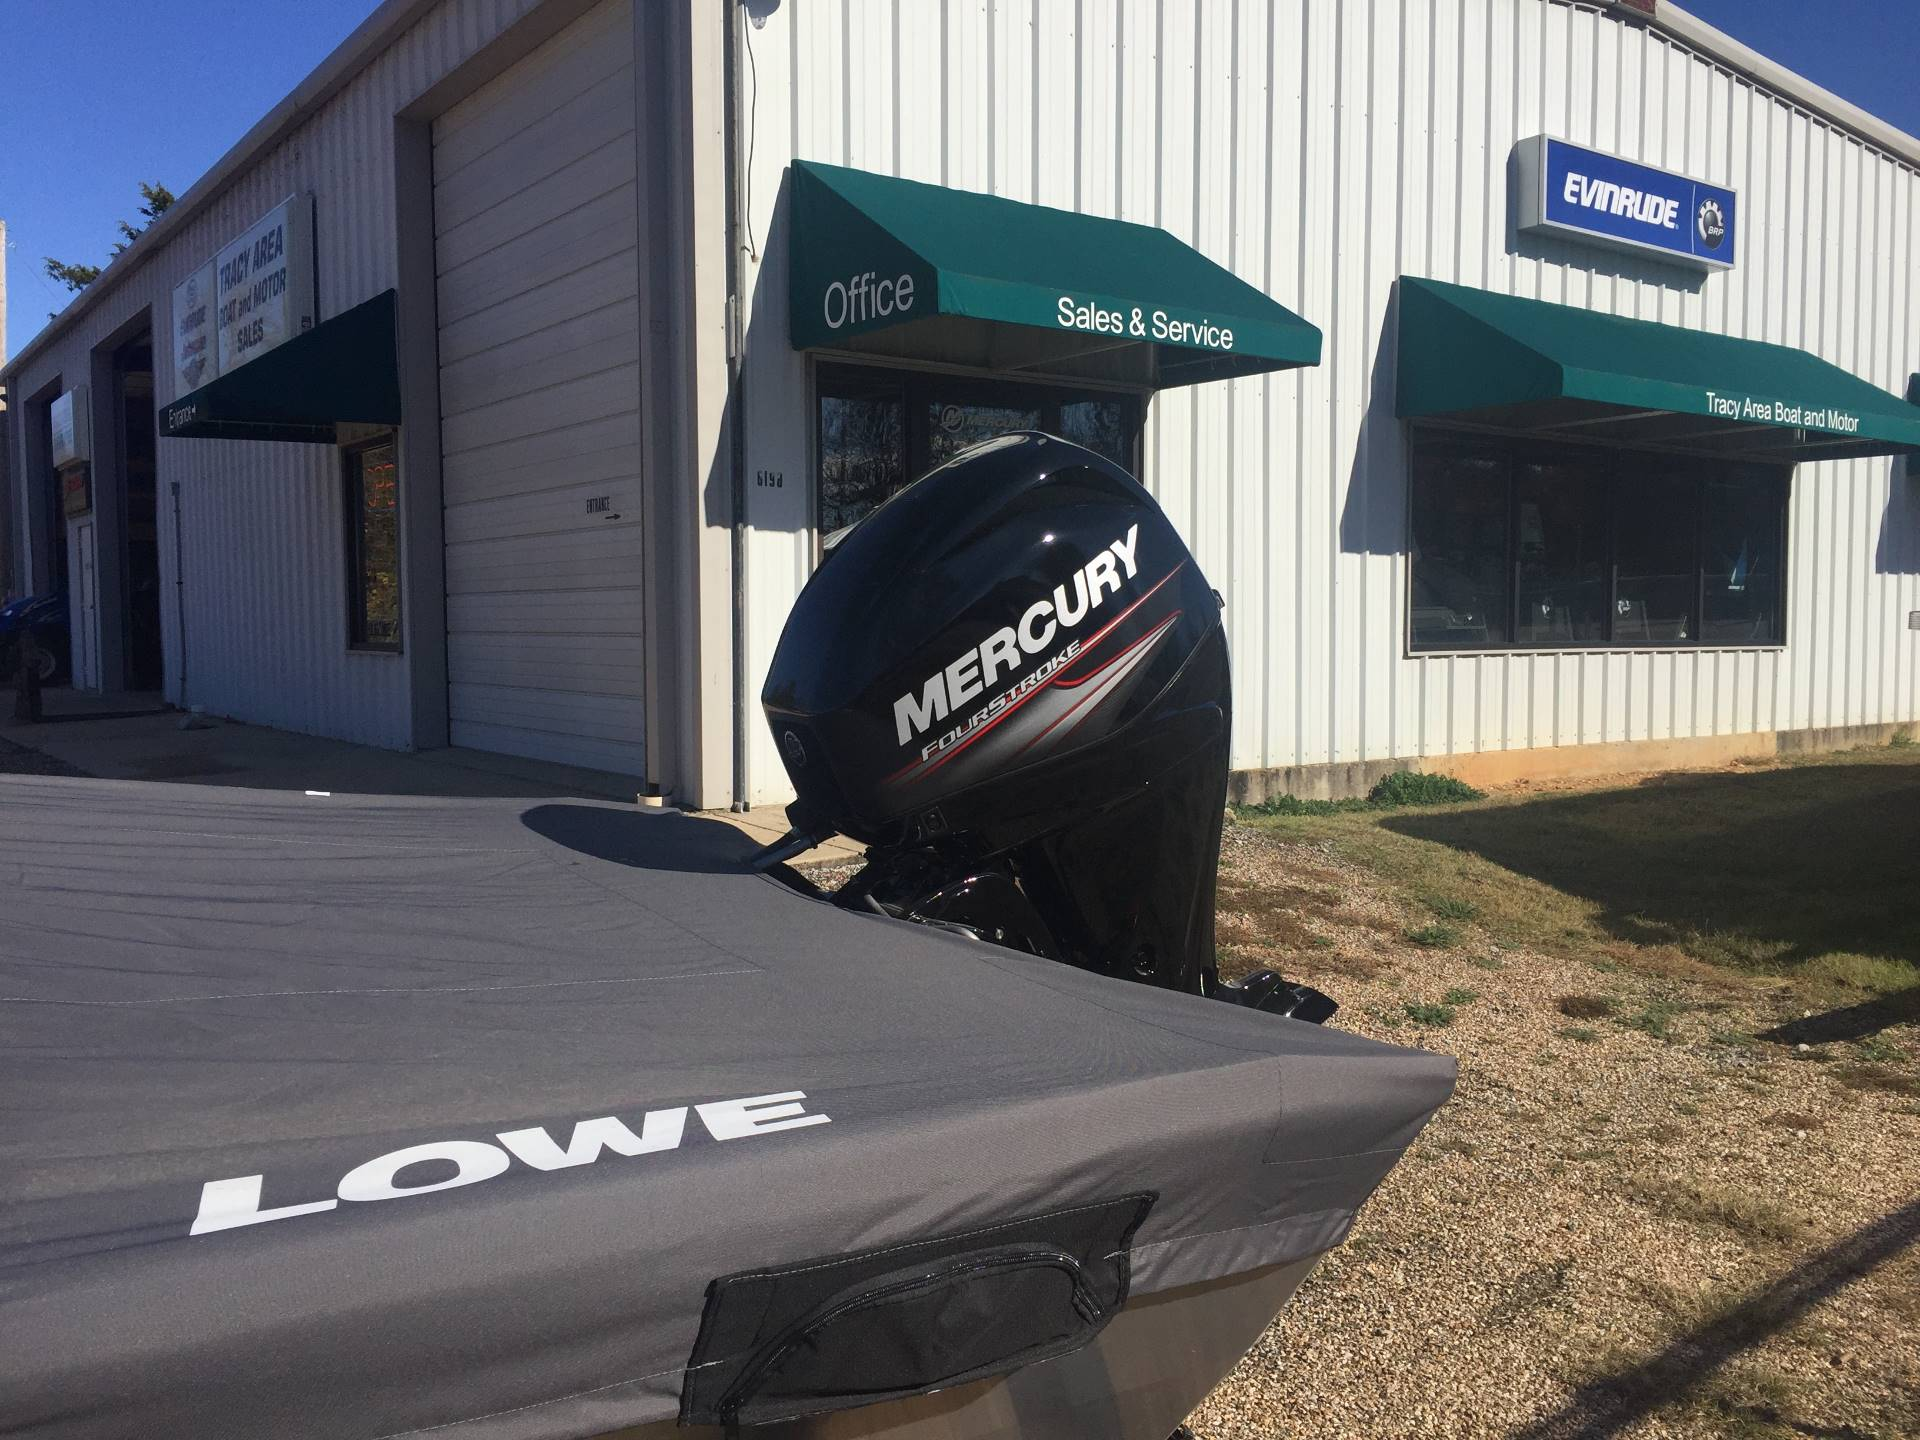 2018 Lowe Skorpion 16 in Mountain Home, Arkansas